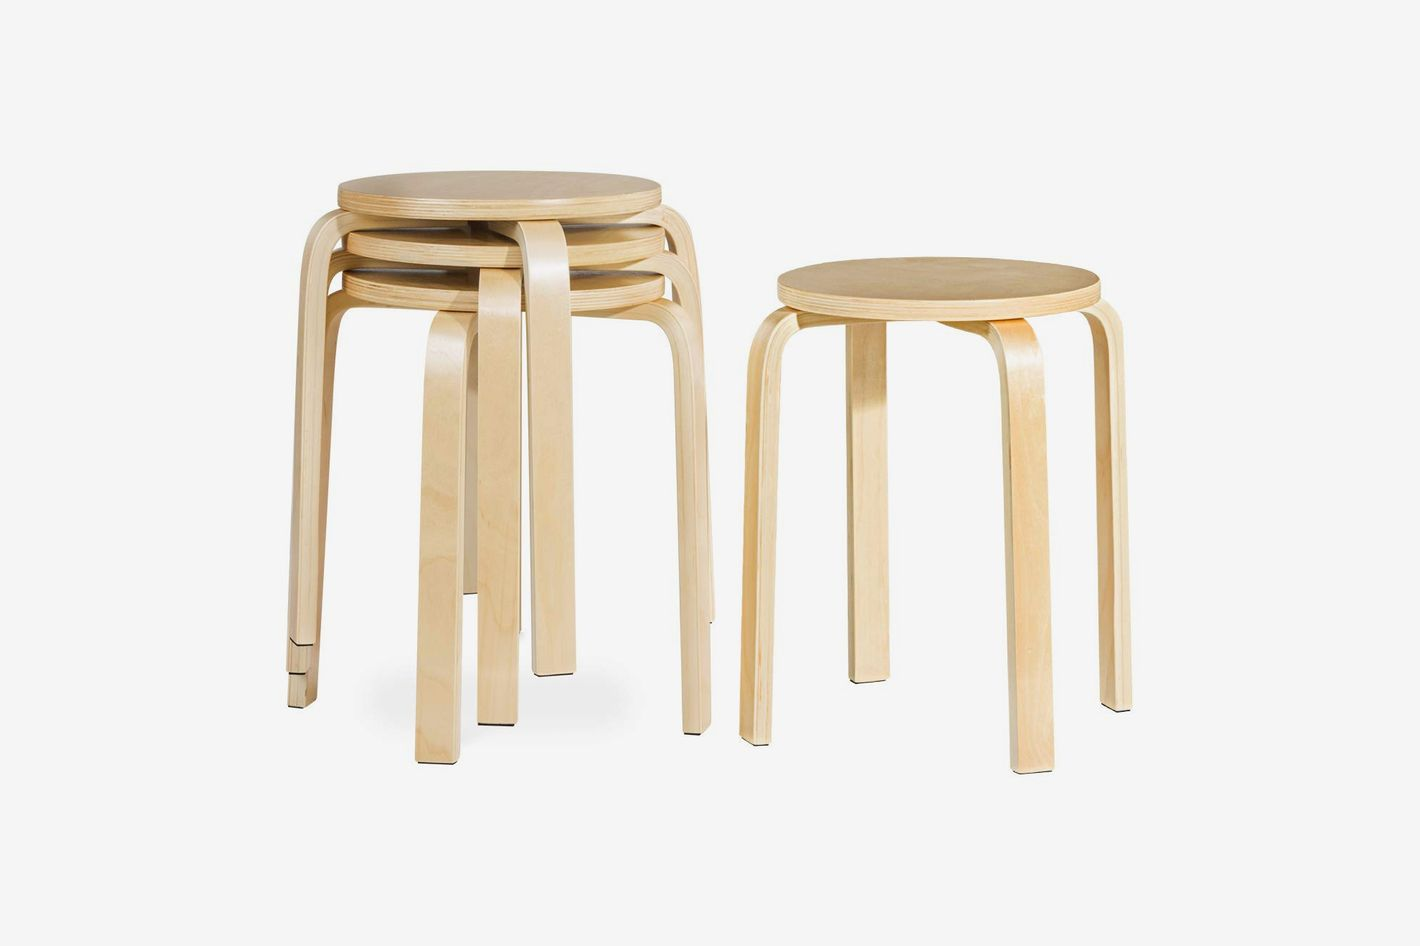 COSTWAY 17-inch Bentwood Stools (Set of 4)